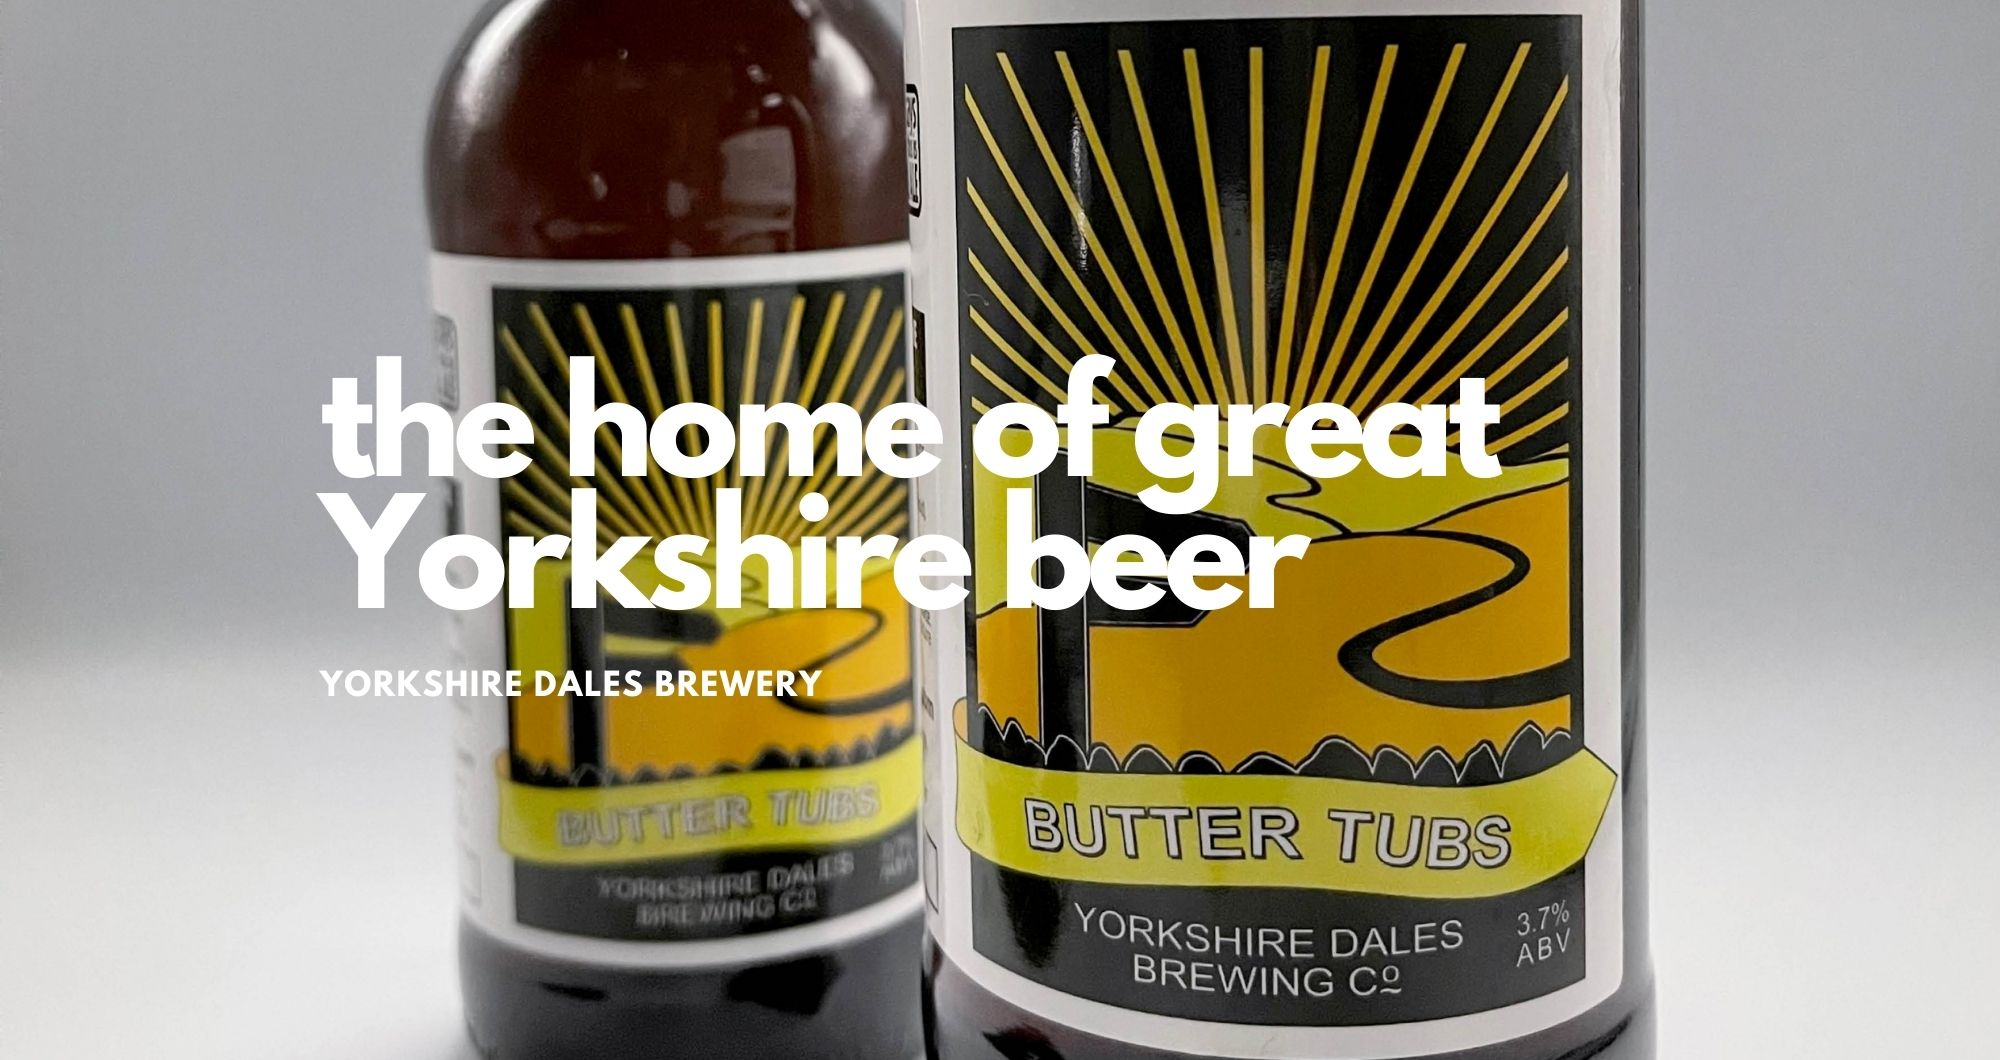 Yorkshire Dales brewery.